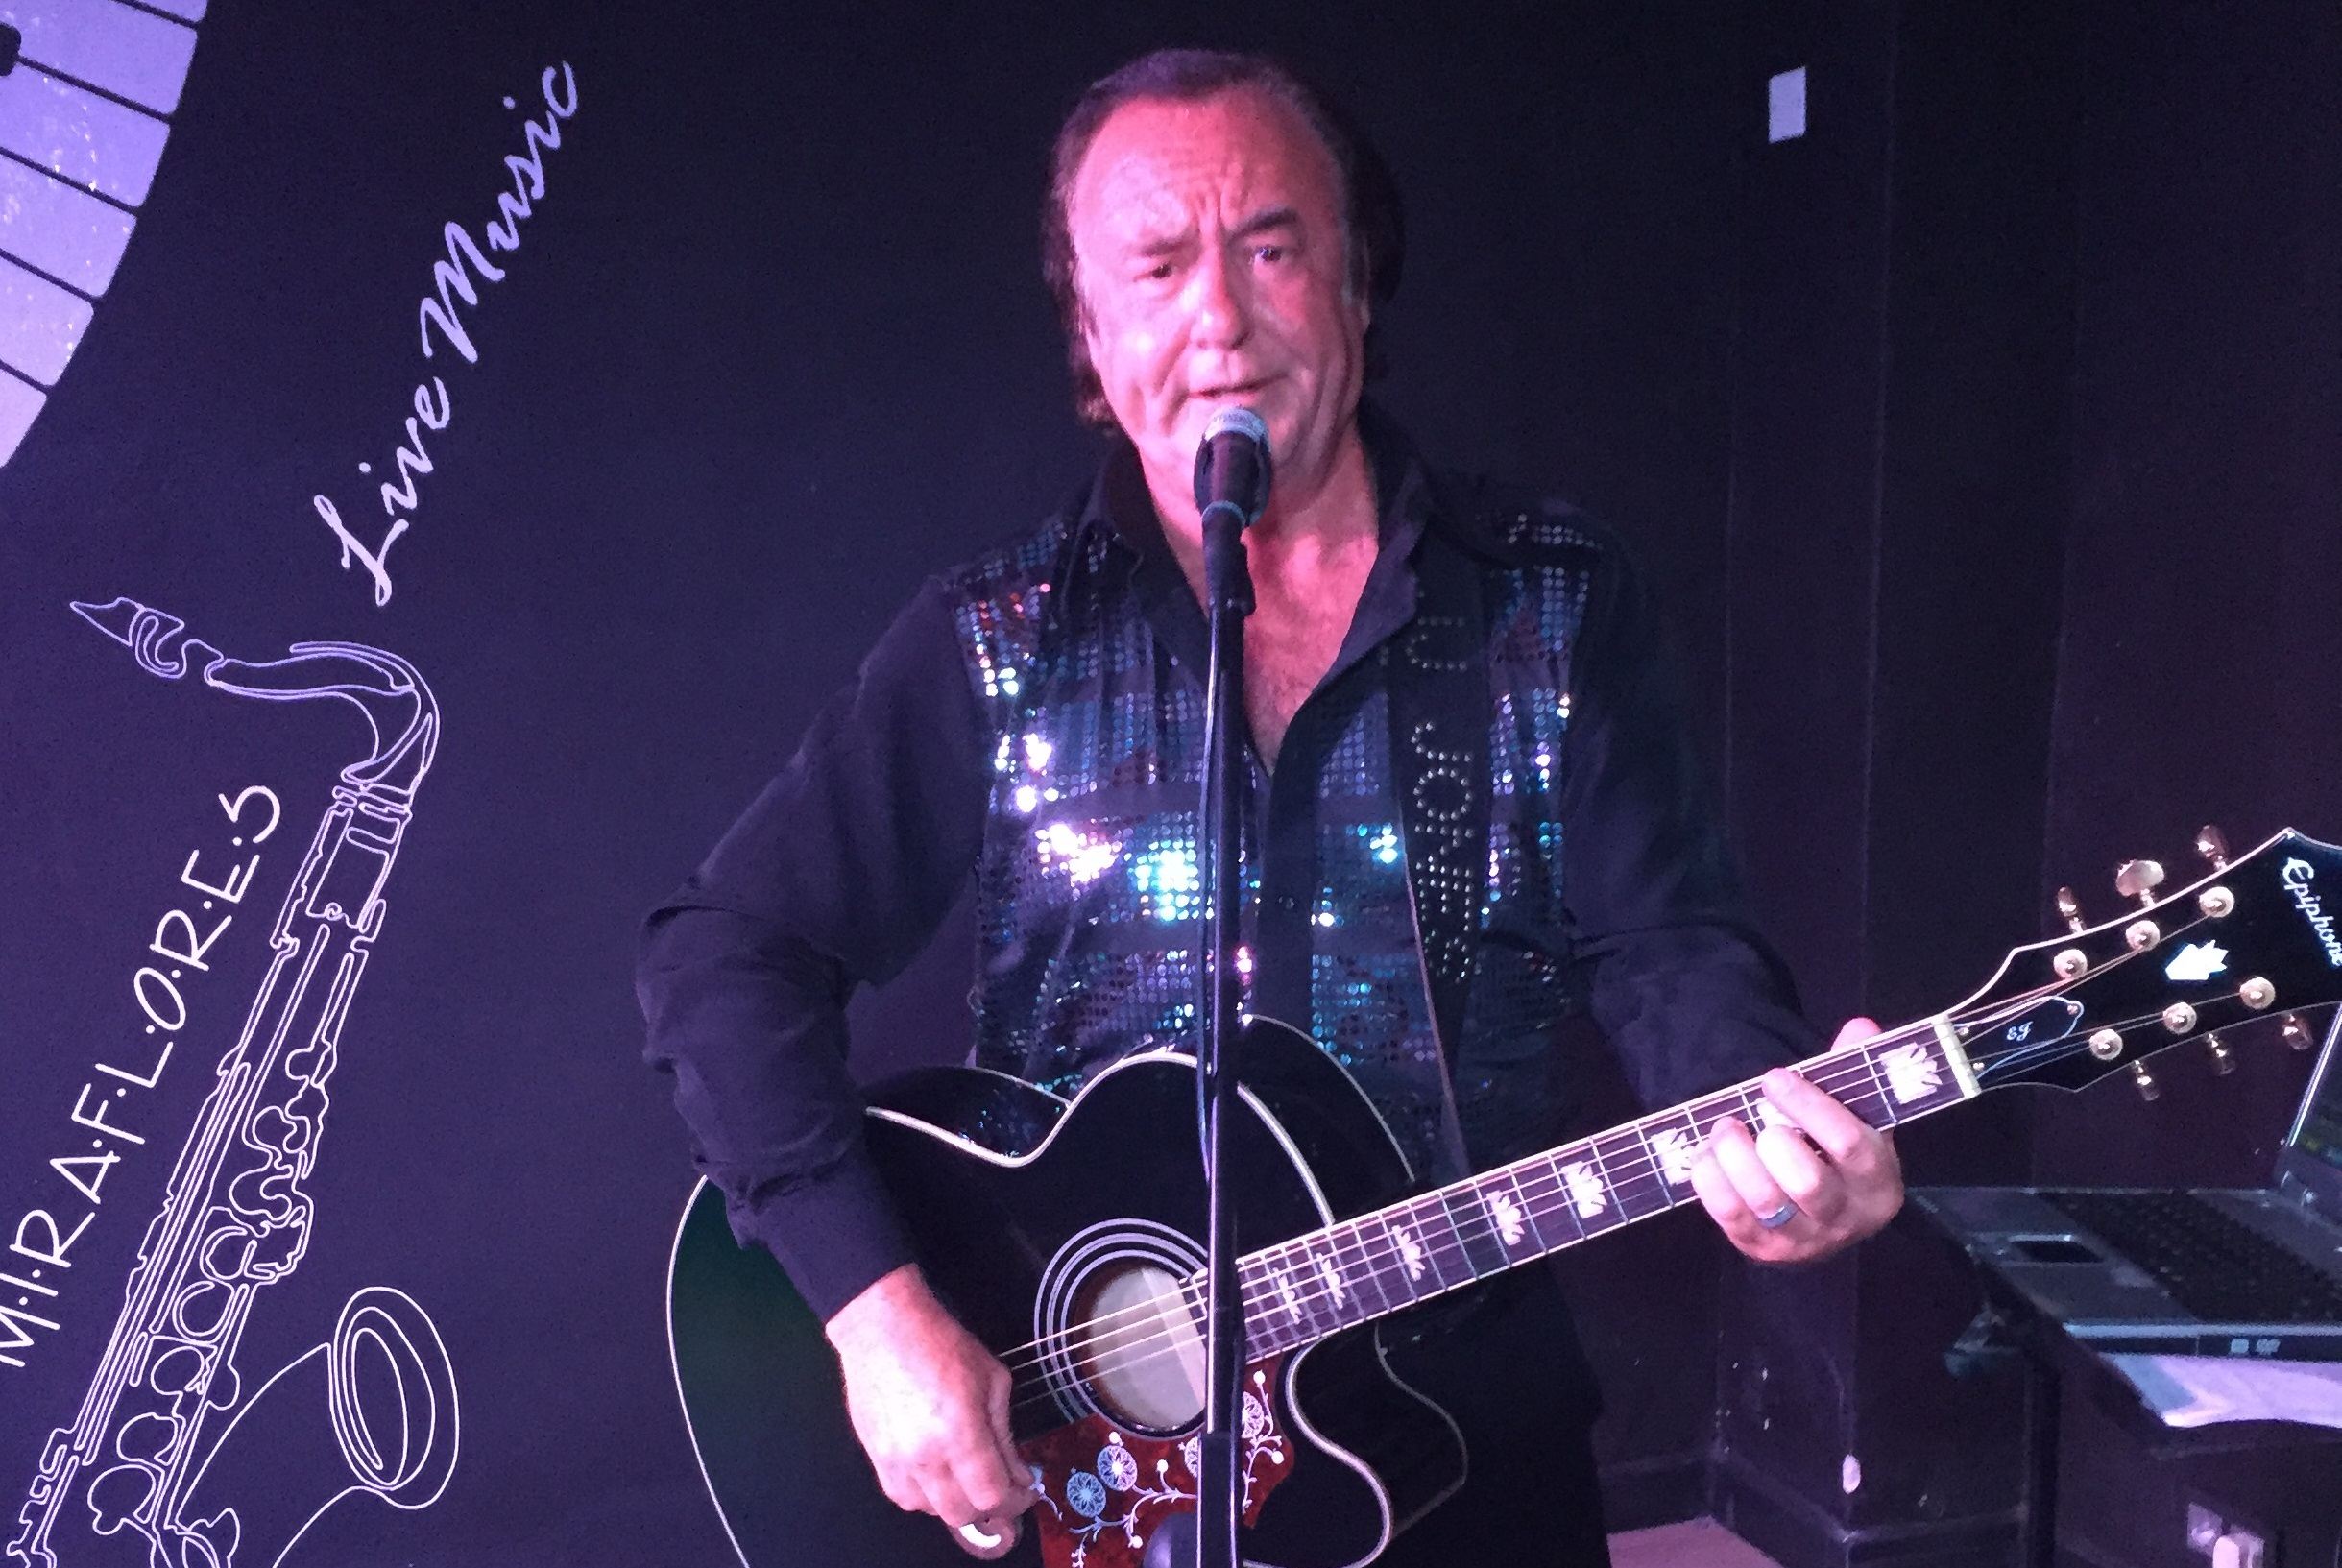 Spain's No.1 Neil Diamond tribute JJ Jones!